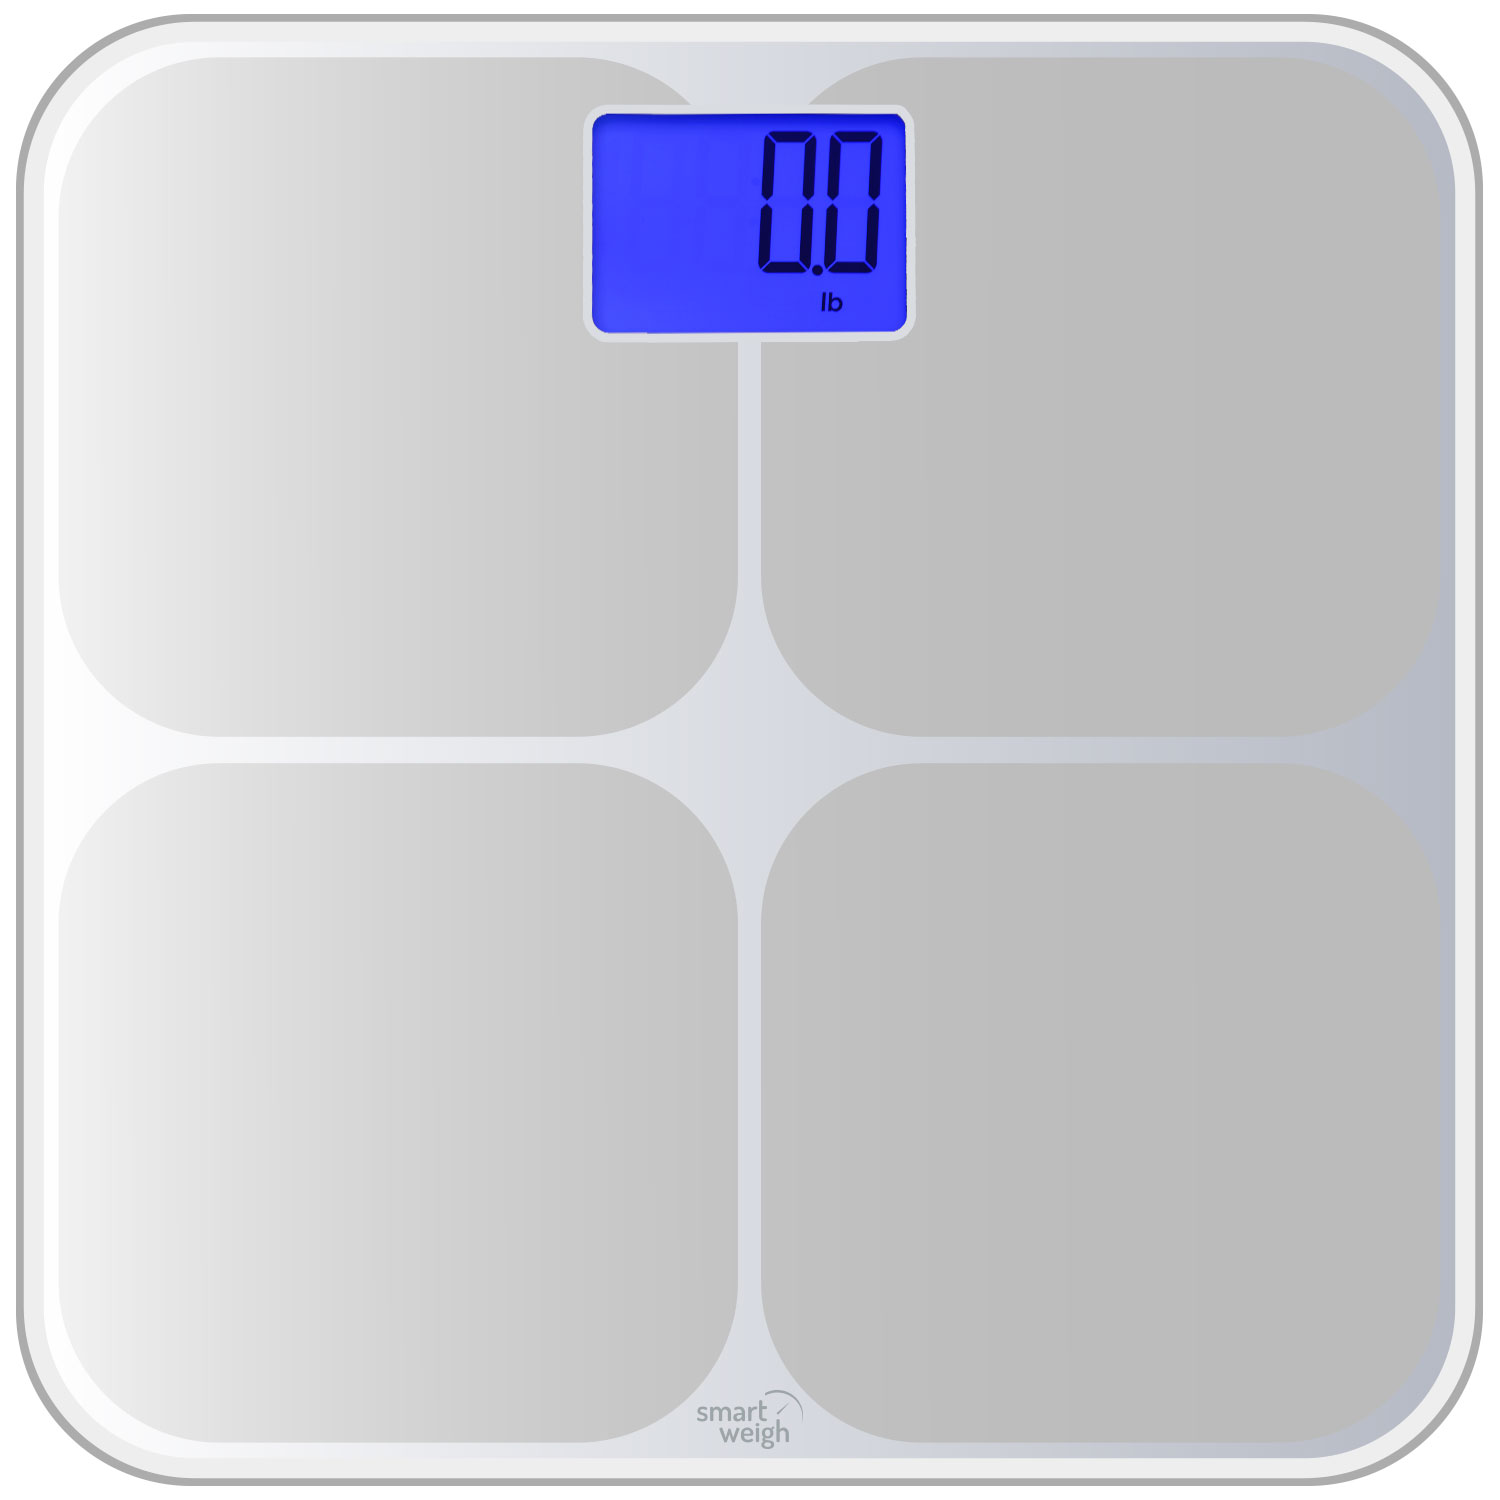 Track Your Weight Goals w the Silver Digital Memory Scale from #smartweigh